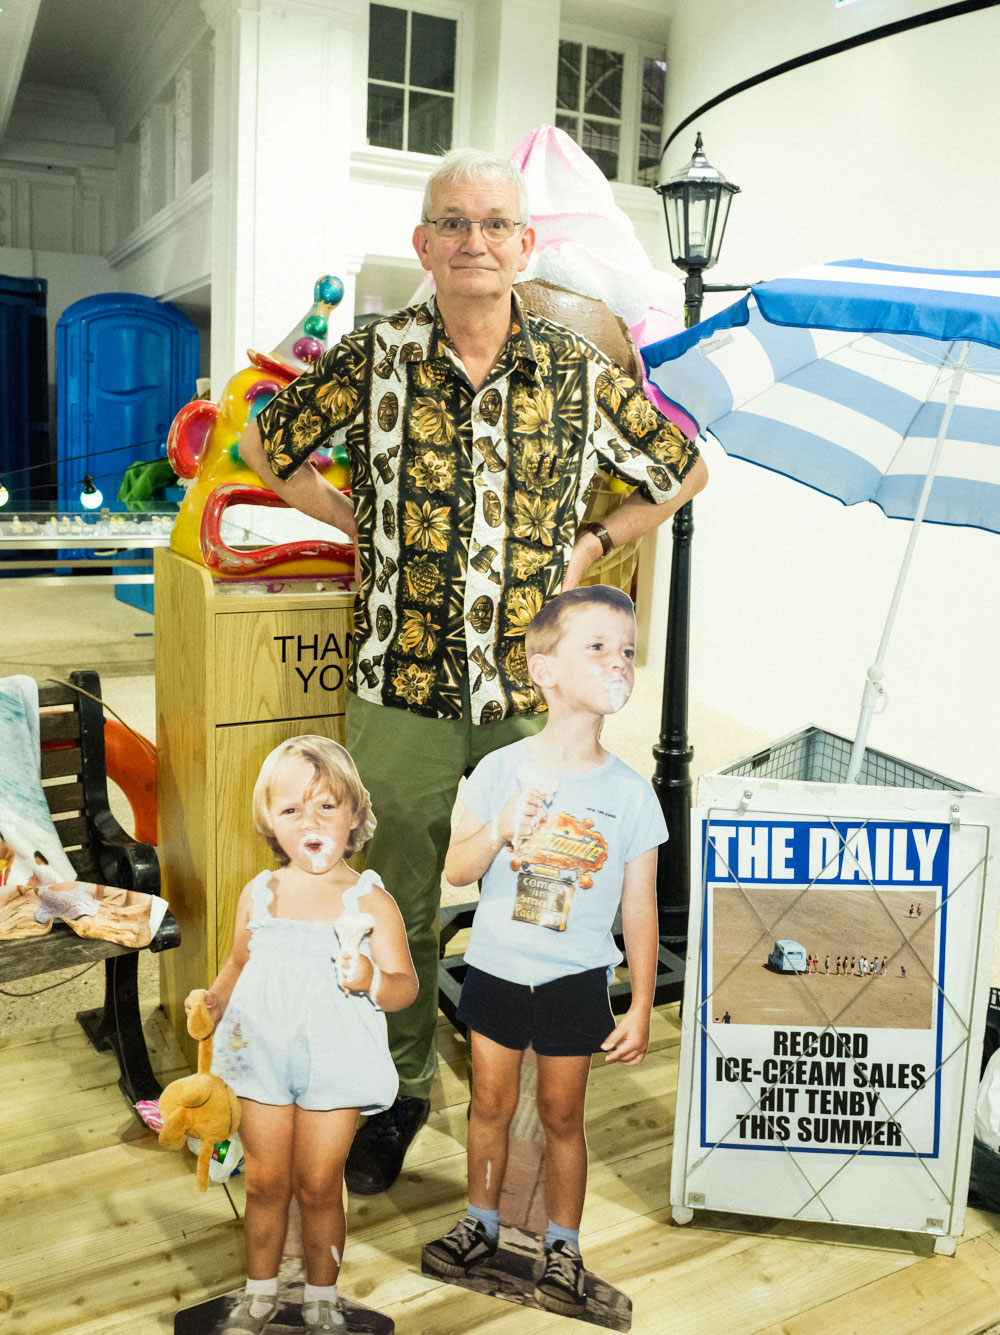 Martin Parr with cut-out figures from his 1985 photo story The Last Resort, at Dover Street Market in London